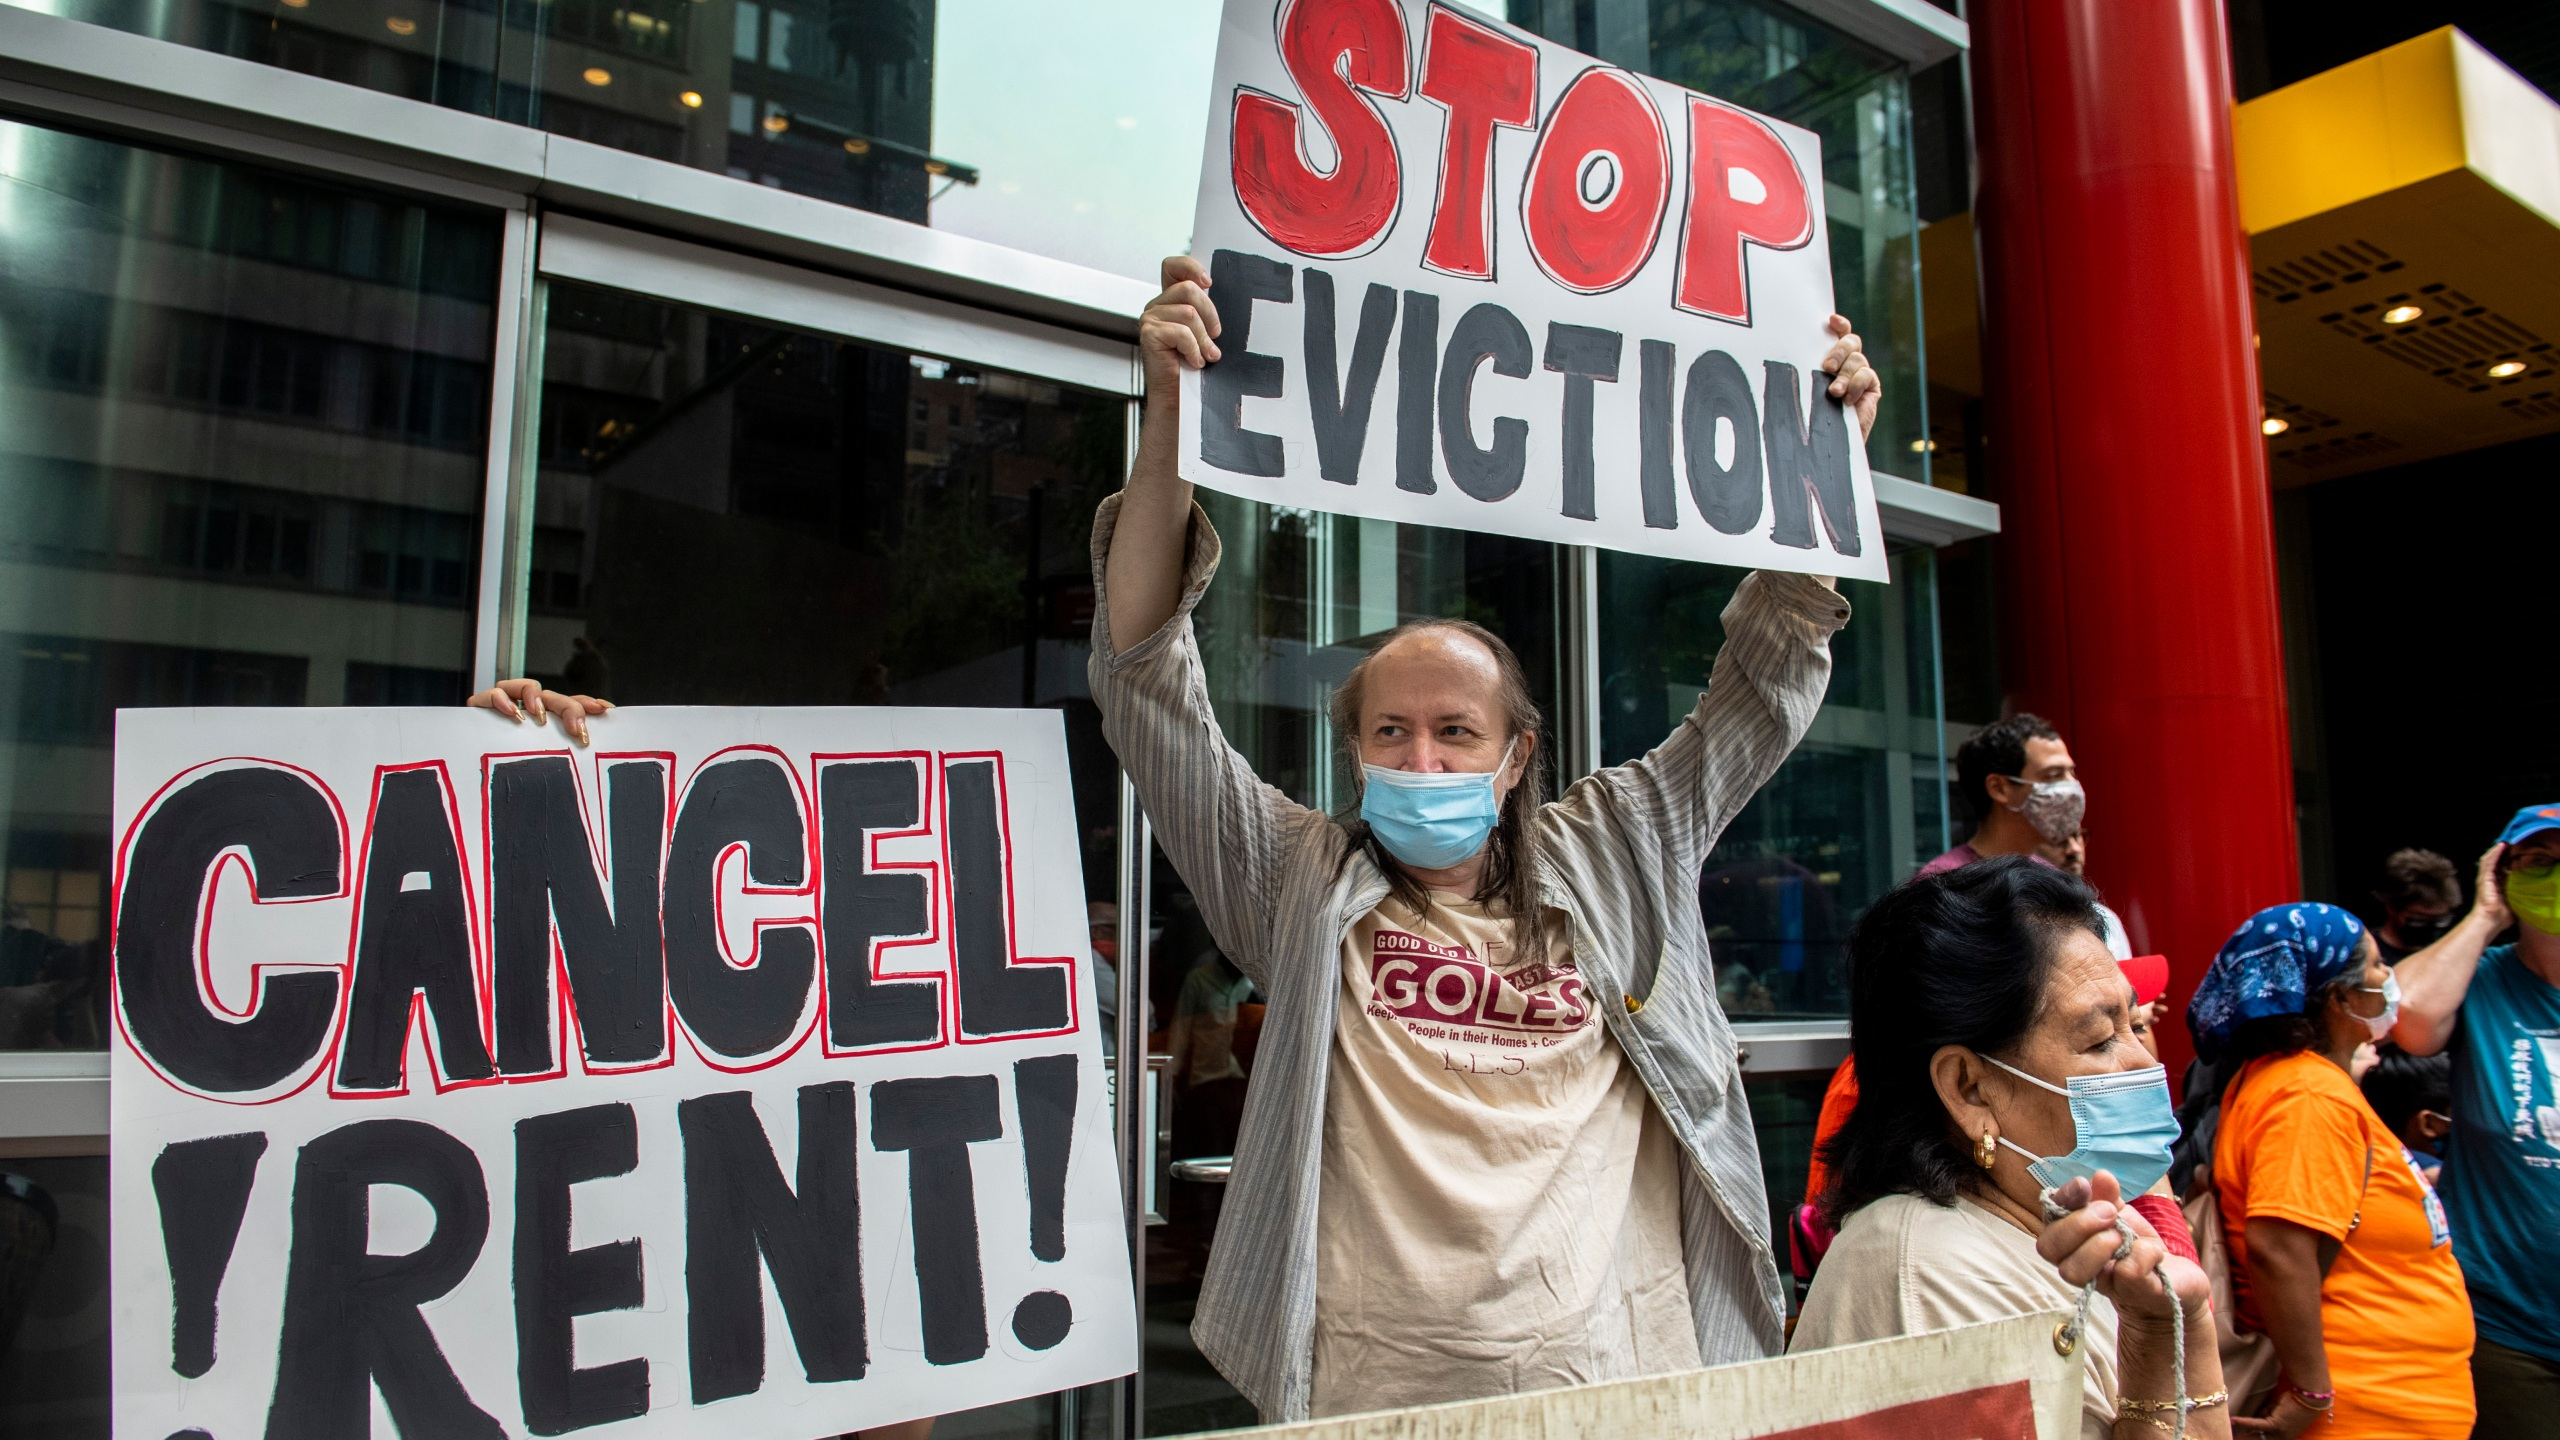 Housing advocates protest on the eviction moratorium in New York on Aug. 4, 2021. (Brittainy Newman / Associated Press)